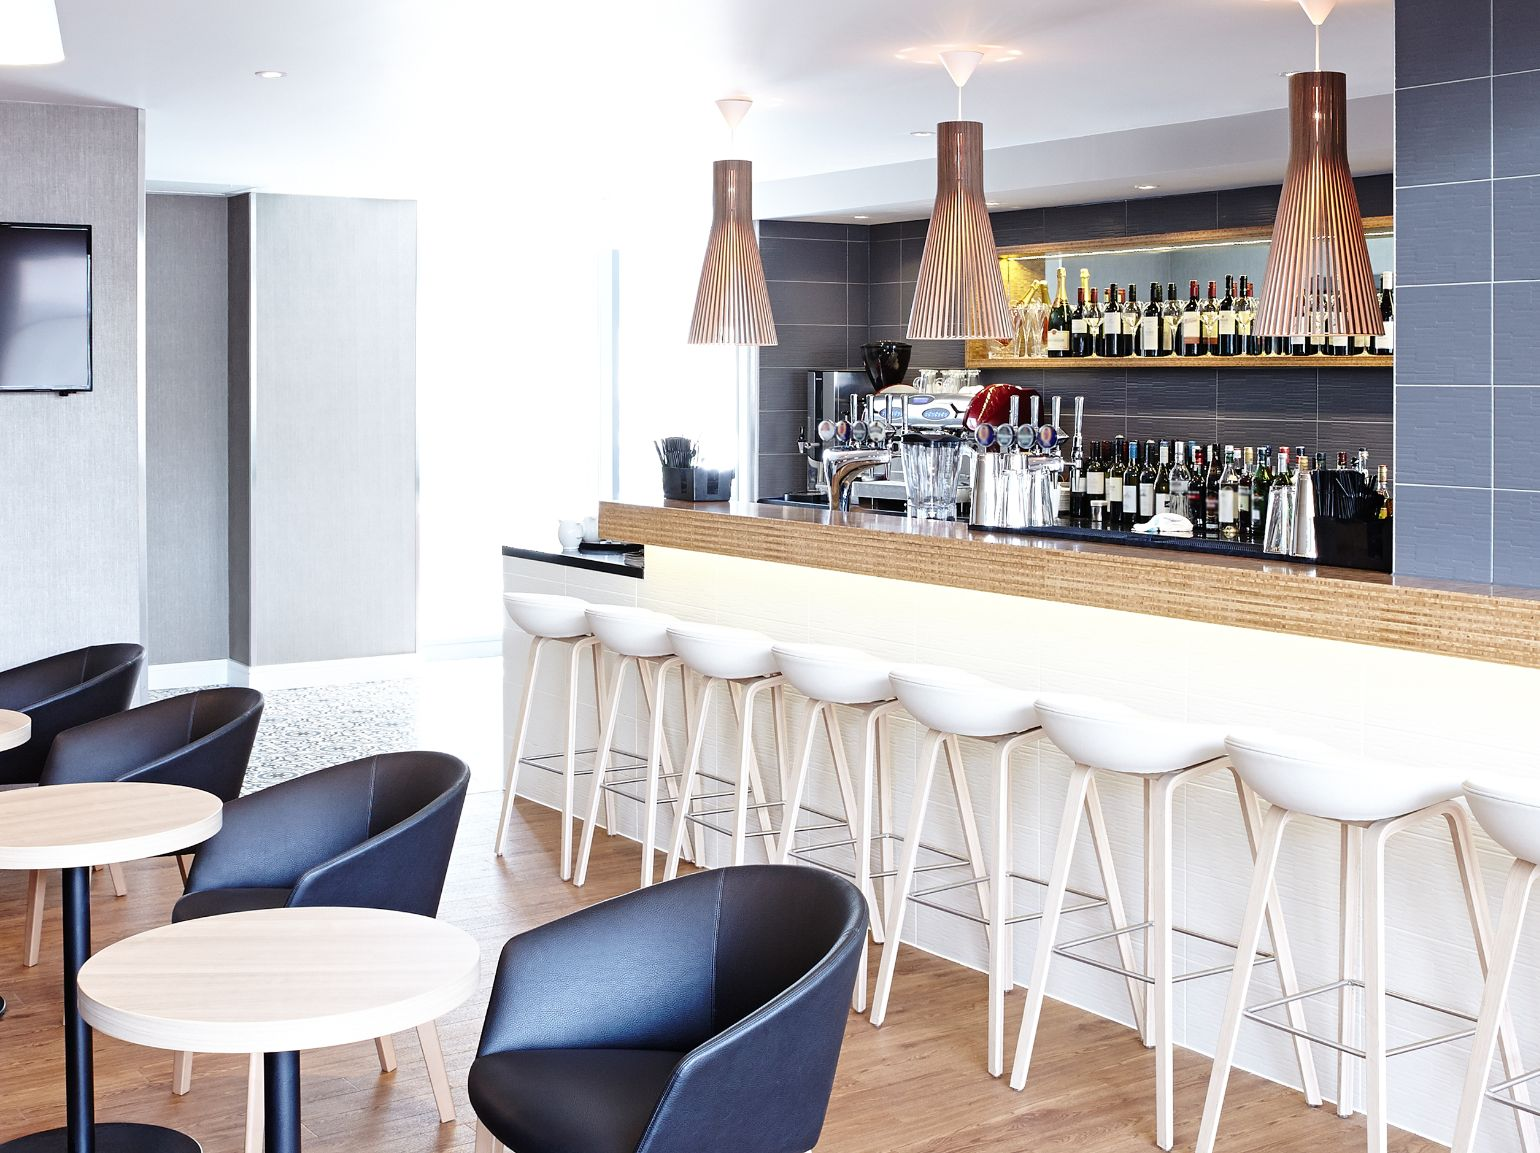 Bar and Restaurant Area in Novotel, London